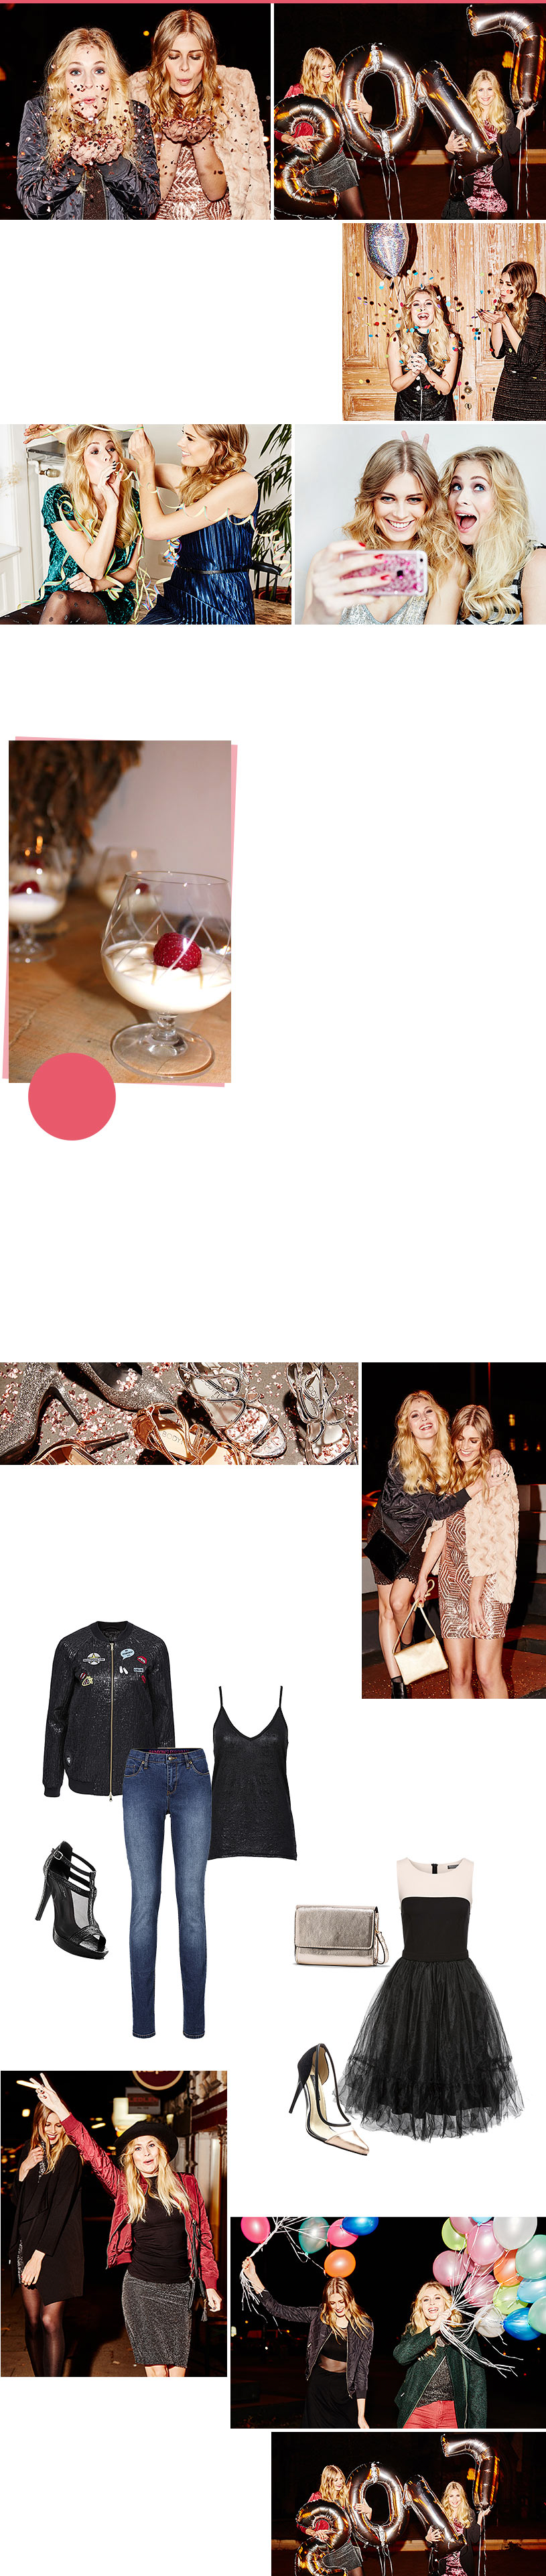 teaser/bpde/freies_layout/INT_RK_MeinLeben_What_to_wear_silvester_5216.jpg